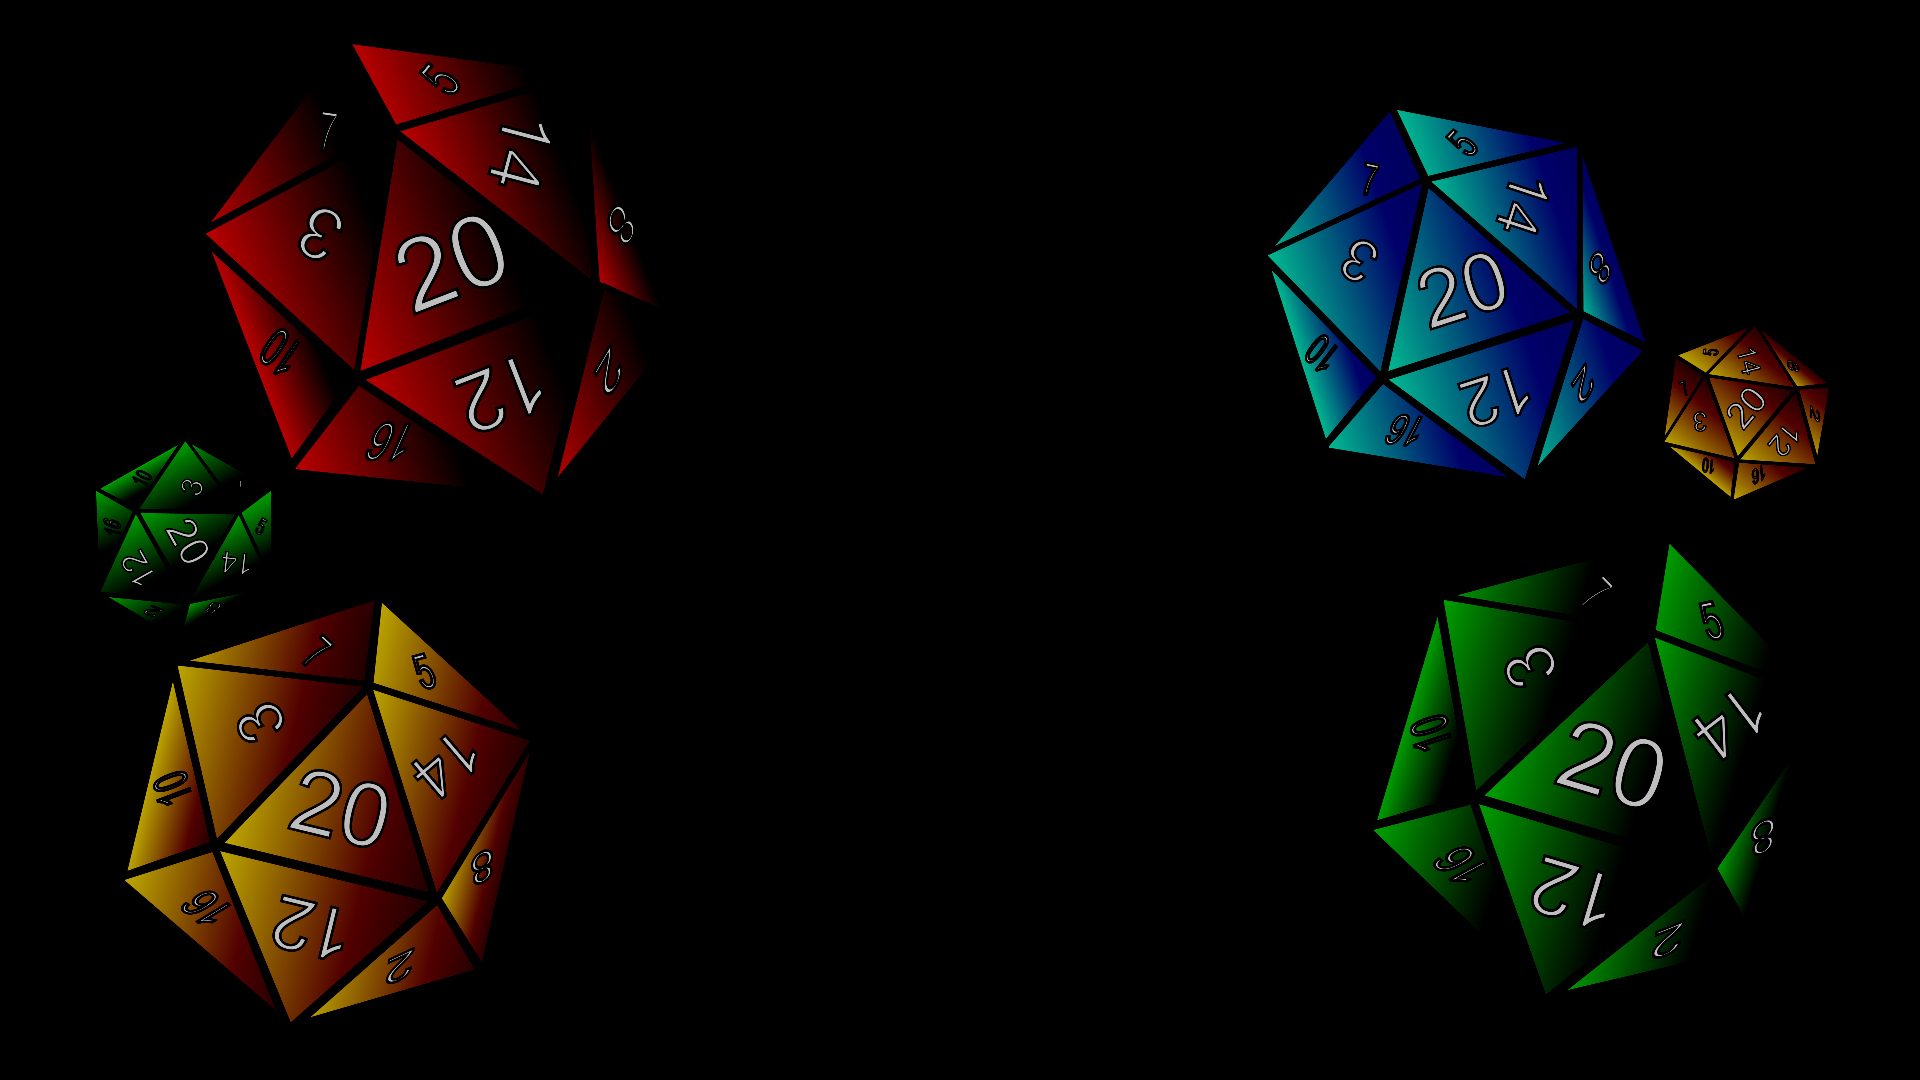 table top simulator background video game tabletop simulator background bunch of d20sjpg image steam